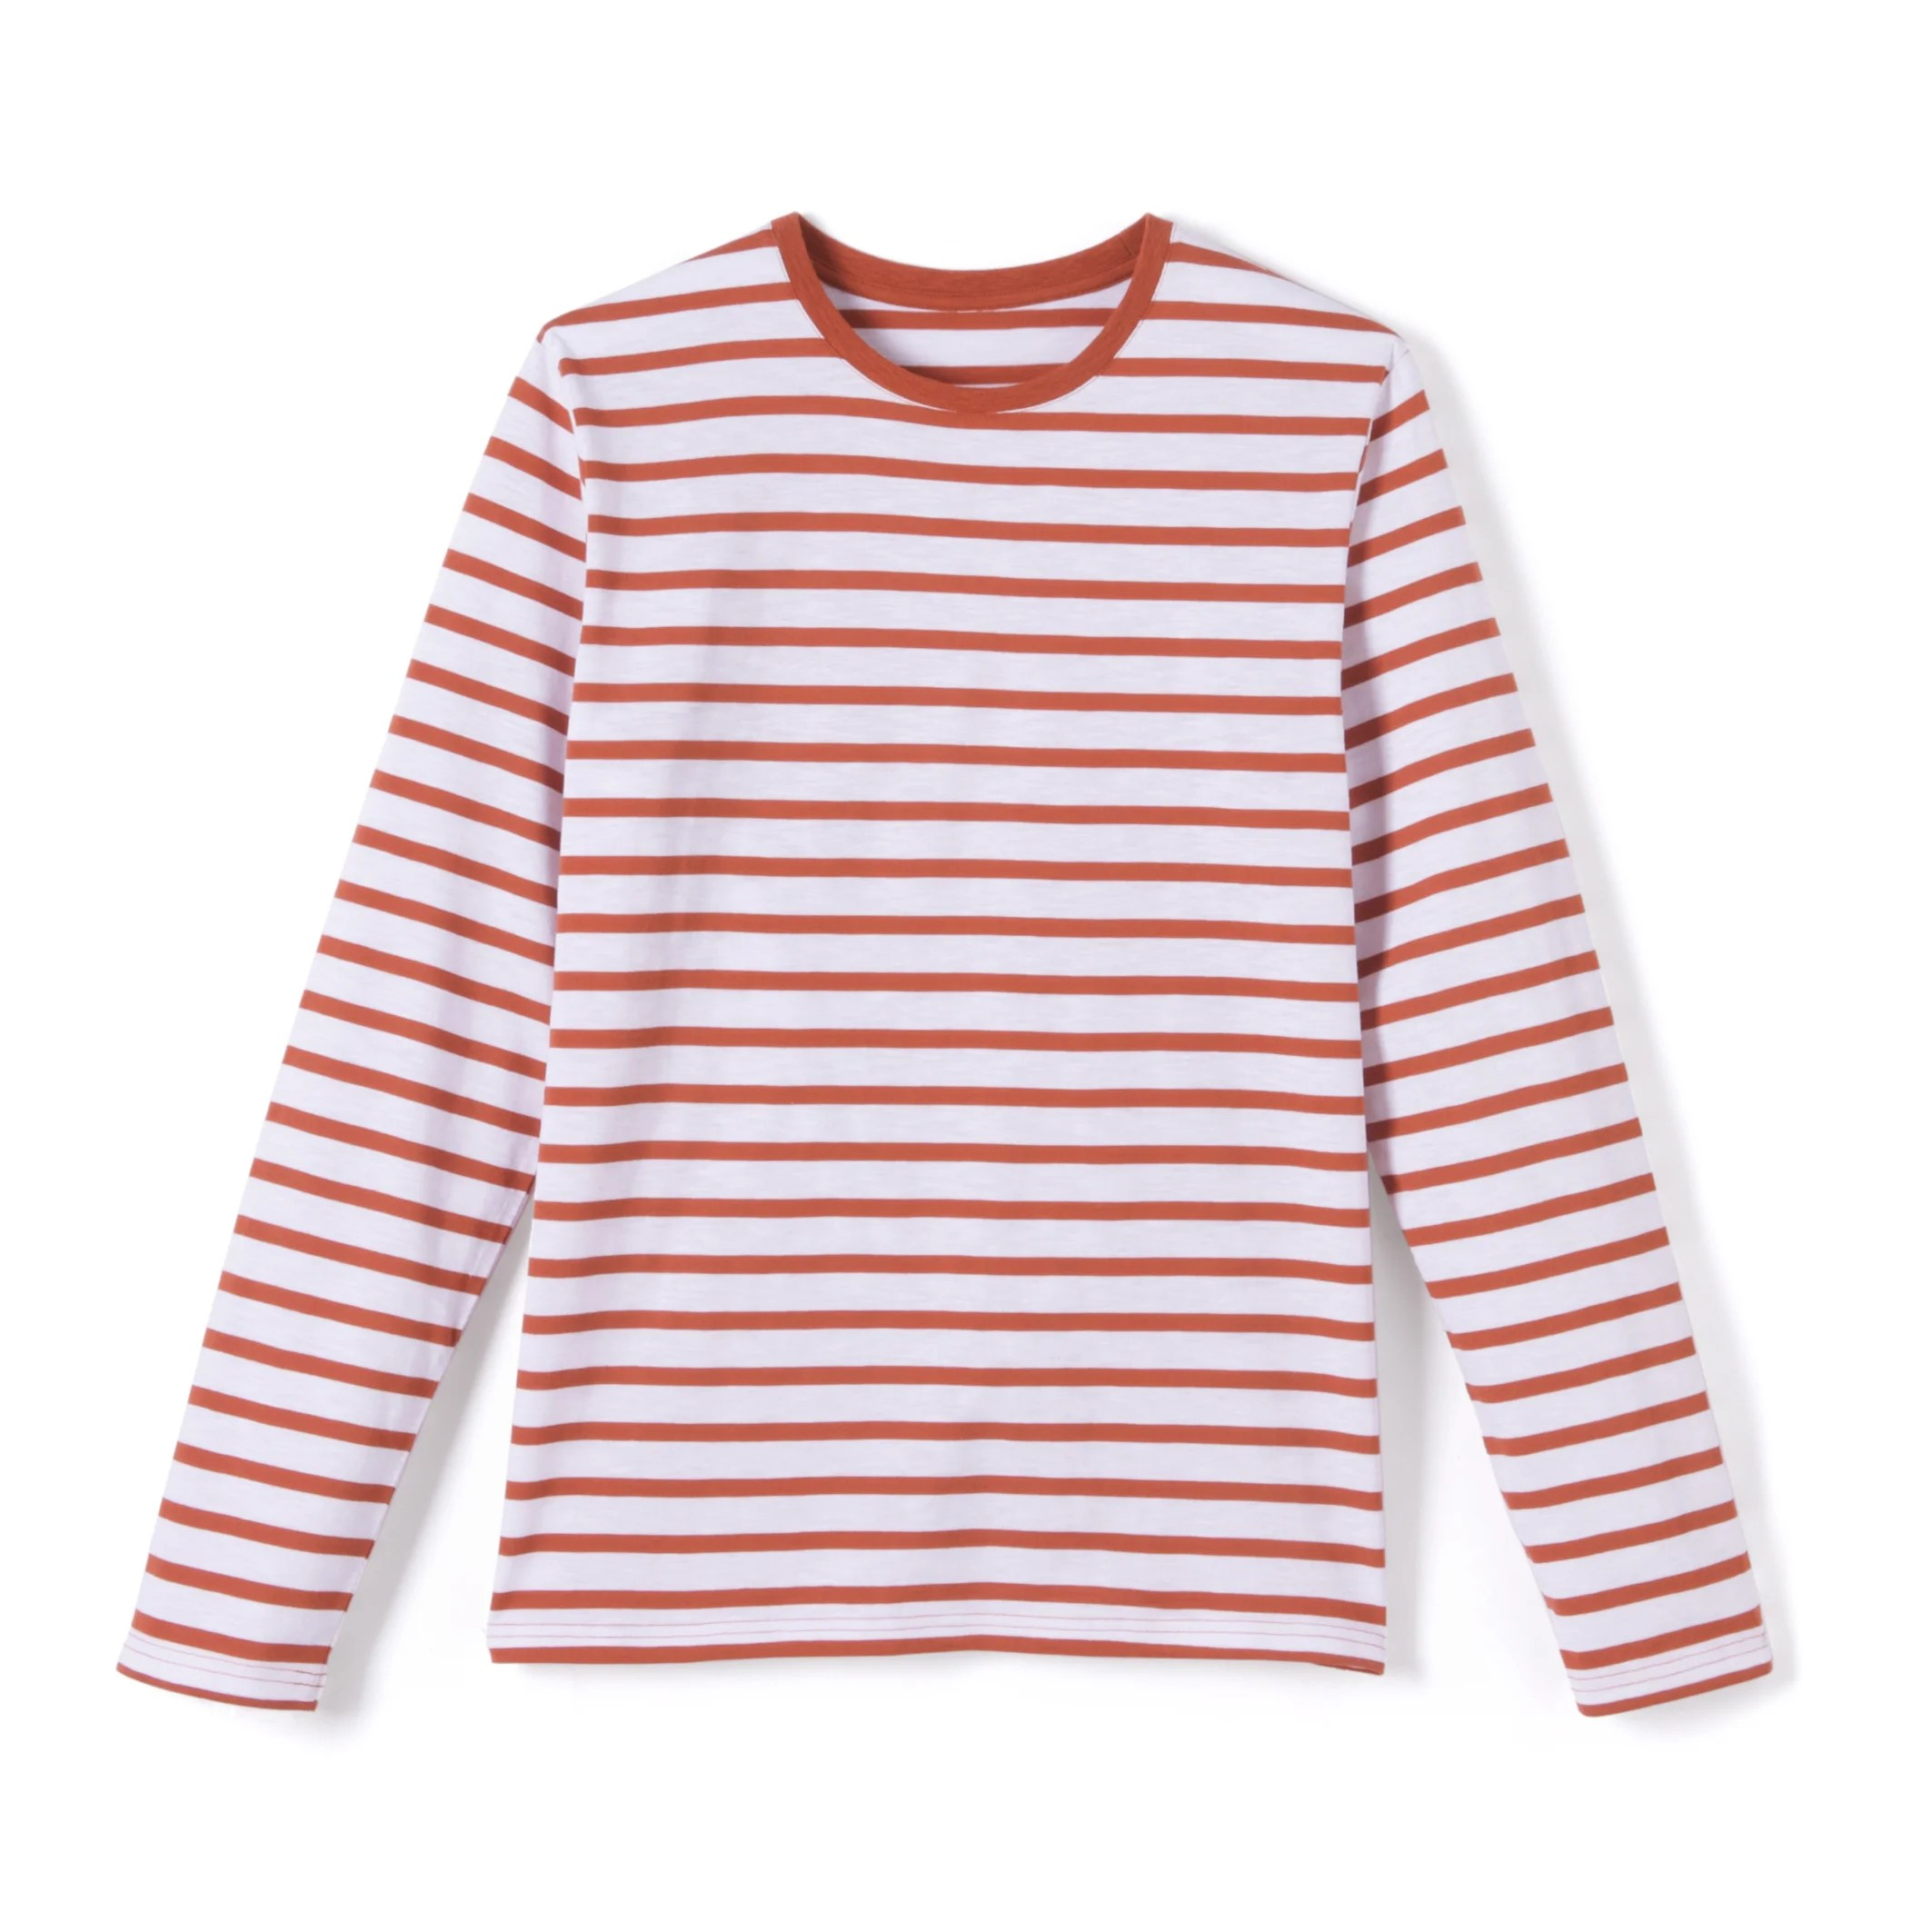 Image Striped Long-Sleeved Crew Neck T-Shirt R essentiel